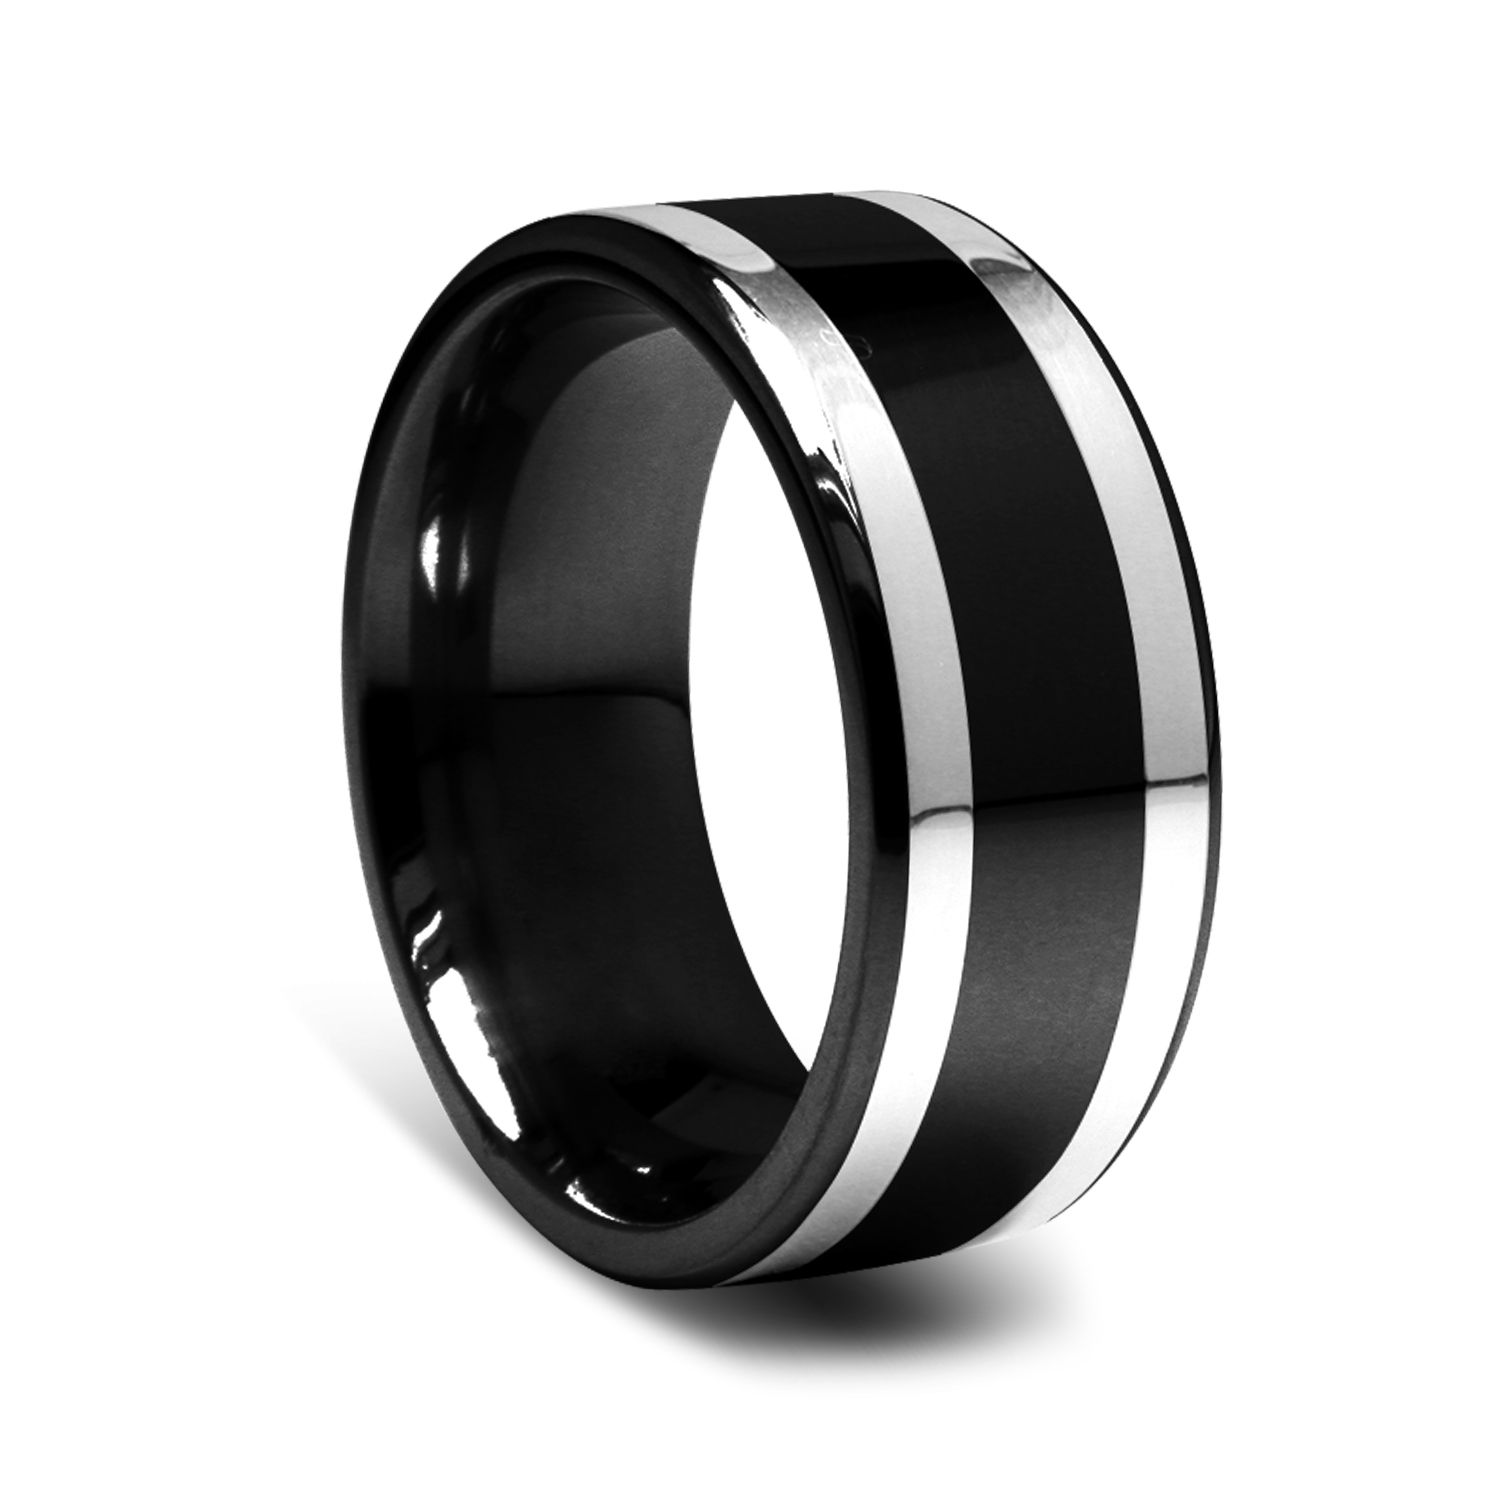 9mm black titanium men s ring with silver inlay a great look